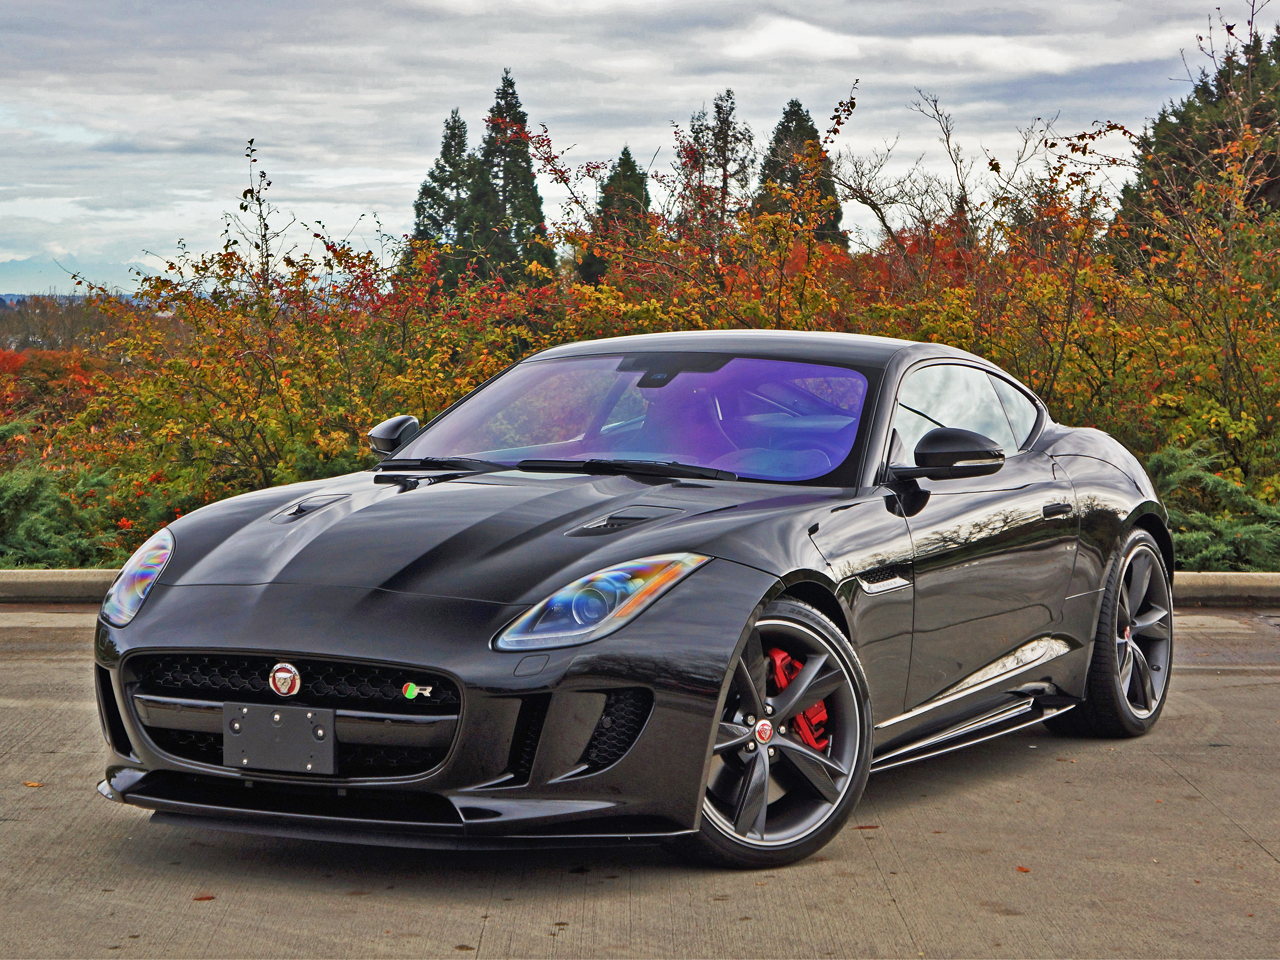 2017 jaguar f type r coupe road test review carcostcanada. Black Bedroom Furniture Sets. Home Design Ideas